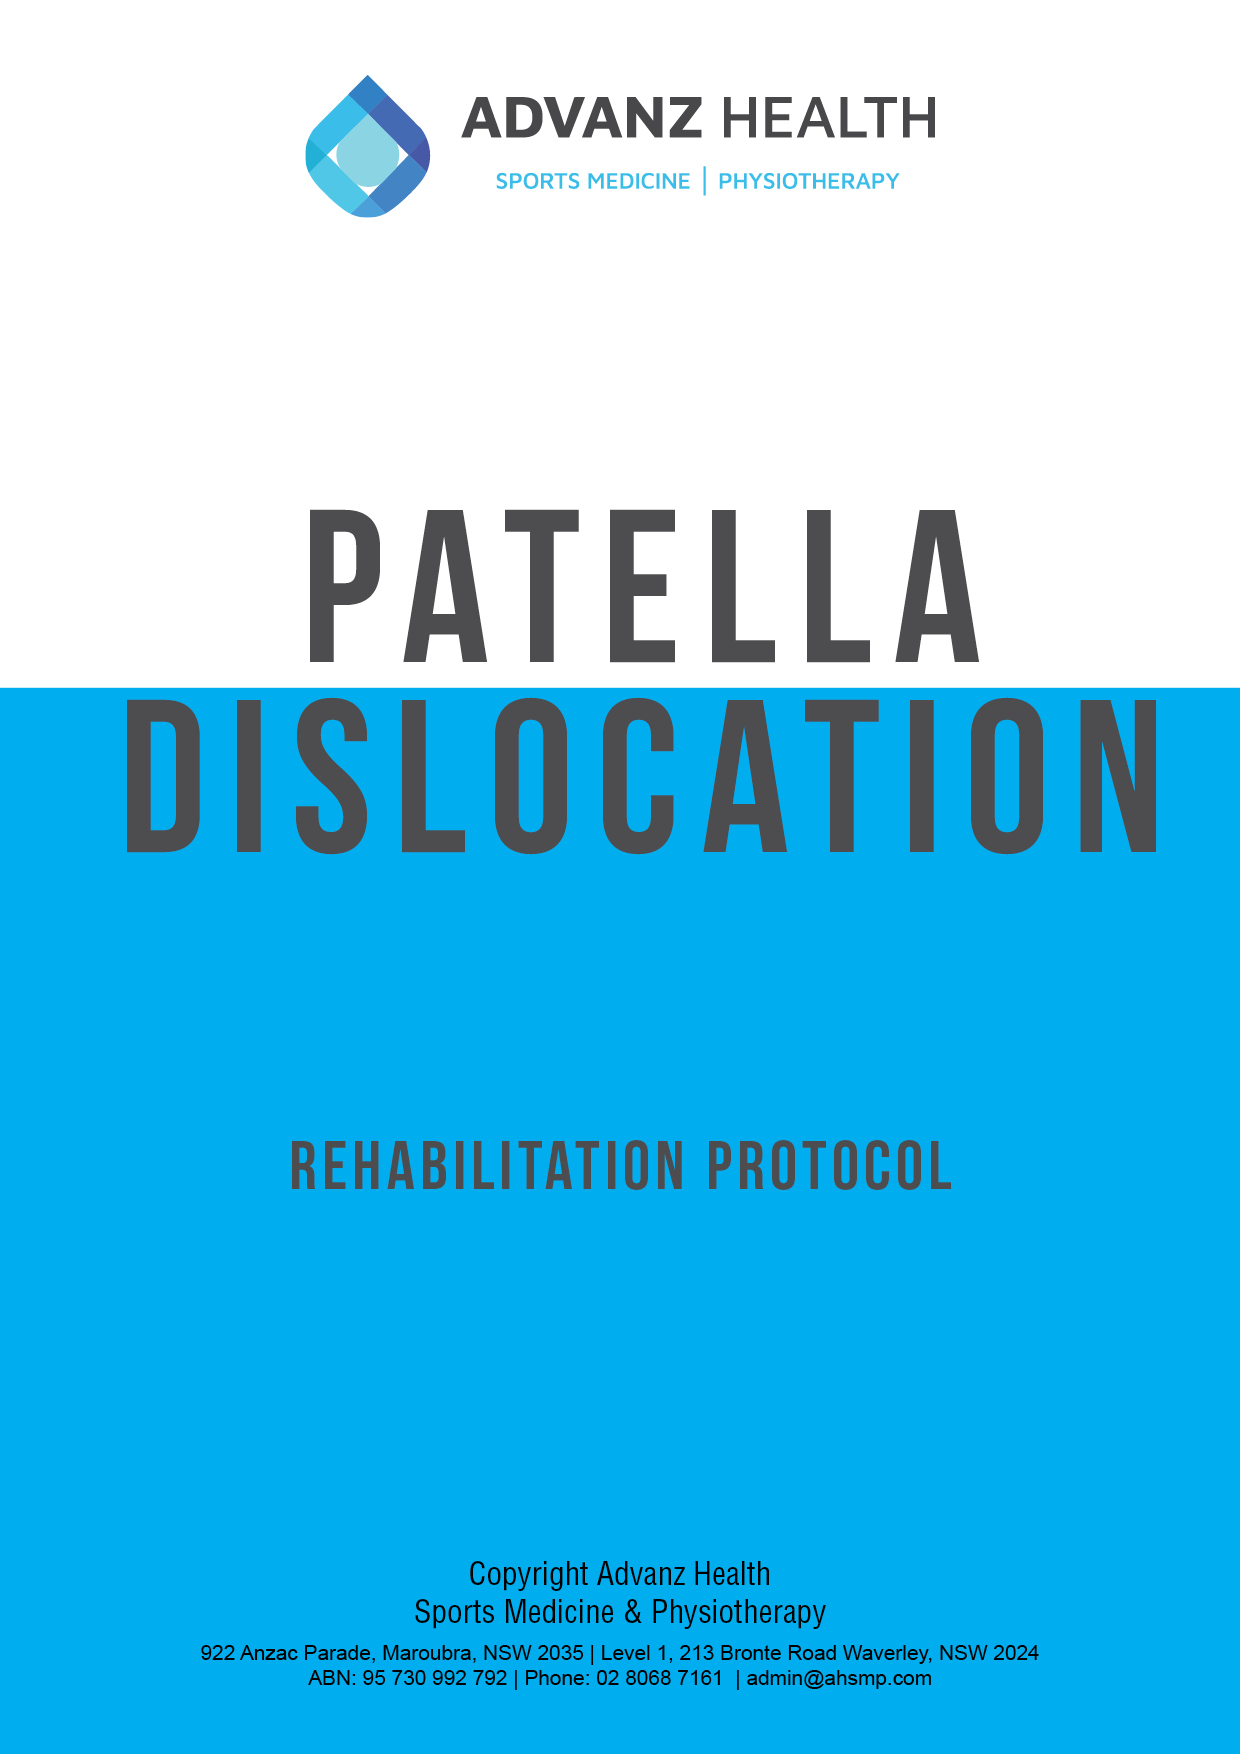 Patella dislocation cover image